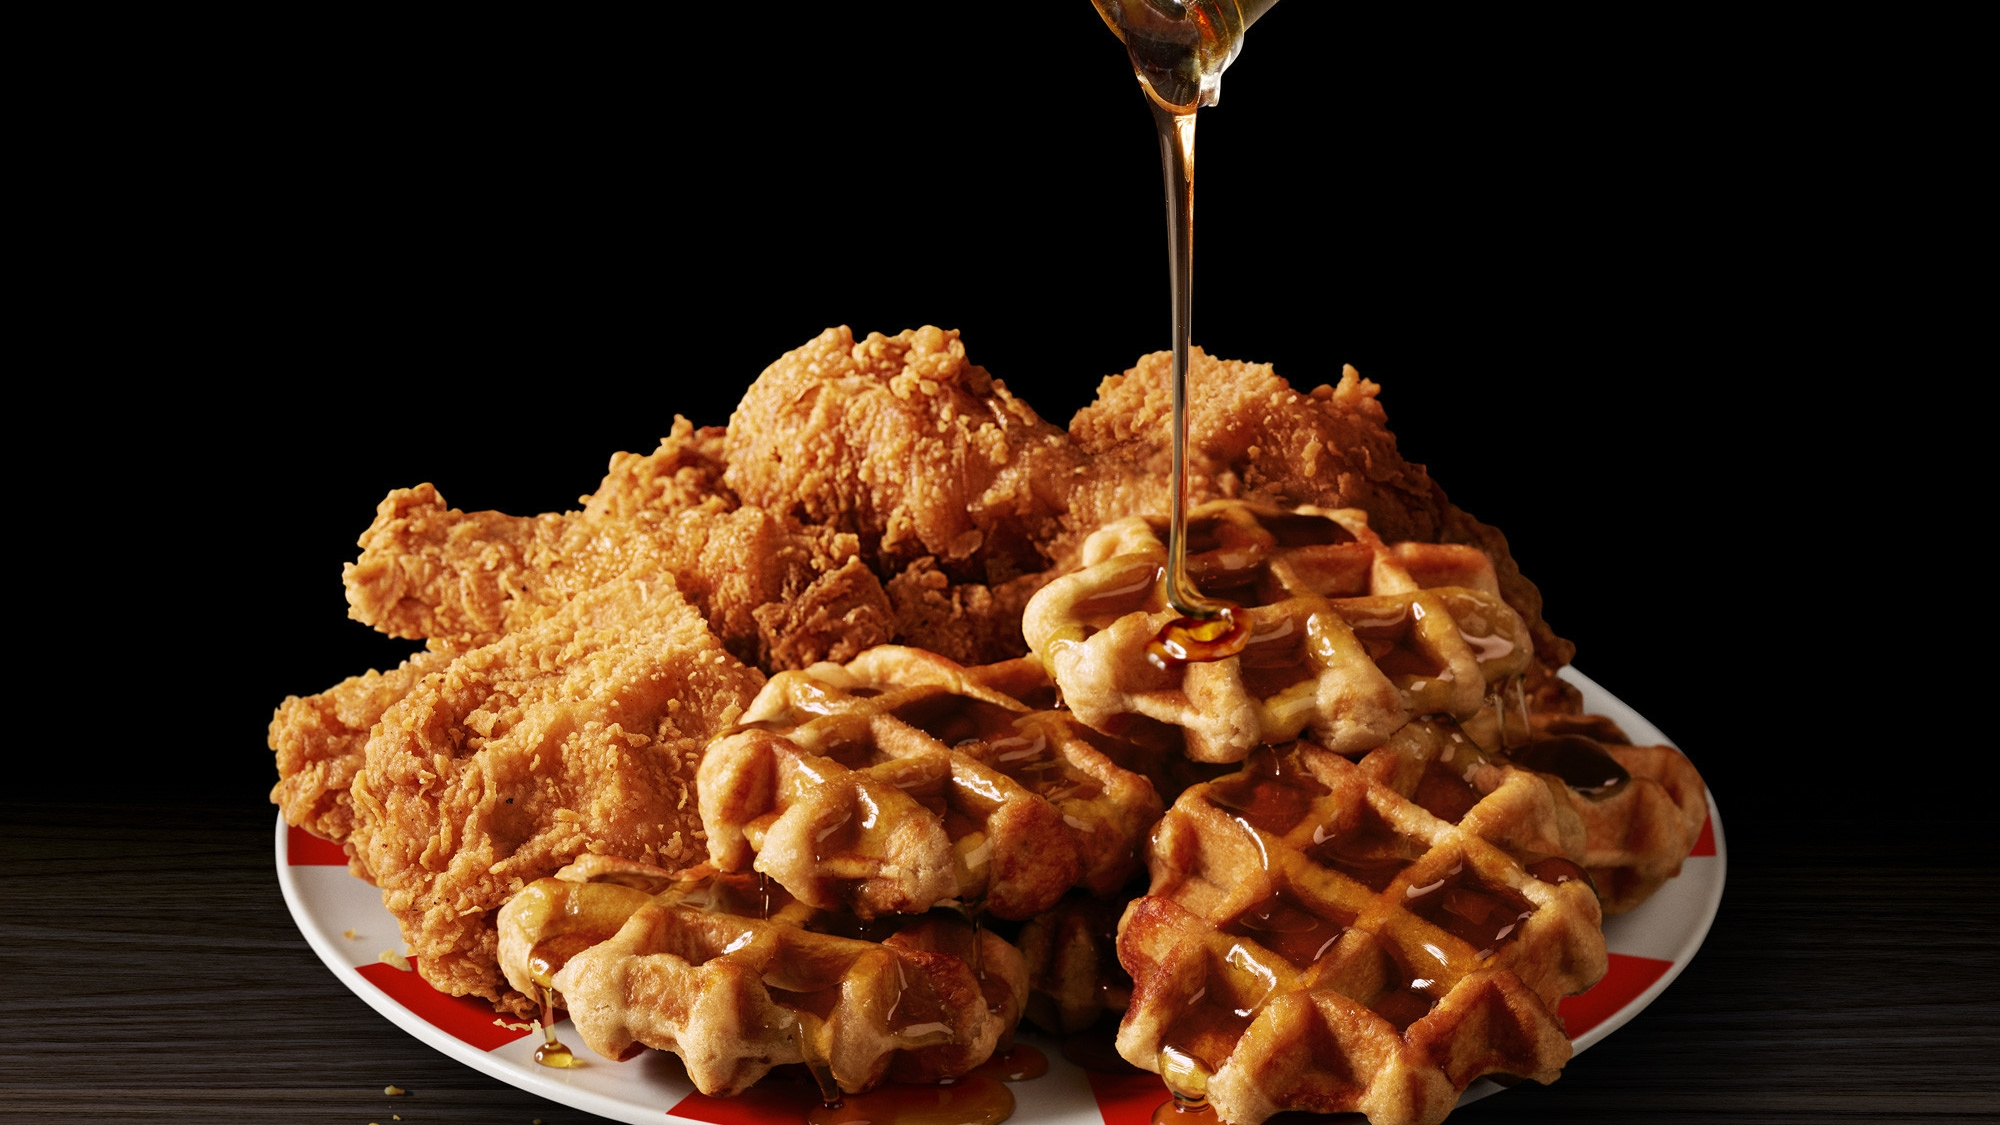 KFC is launching chicken and waffles nationwide for limited time